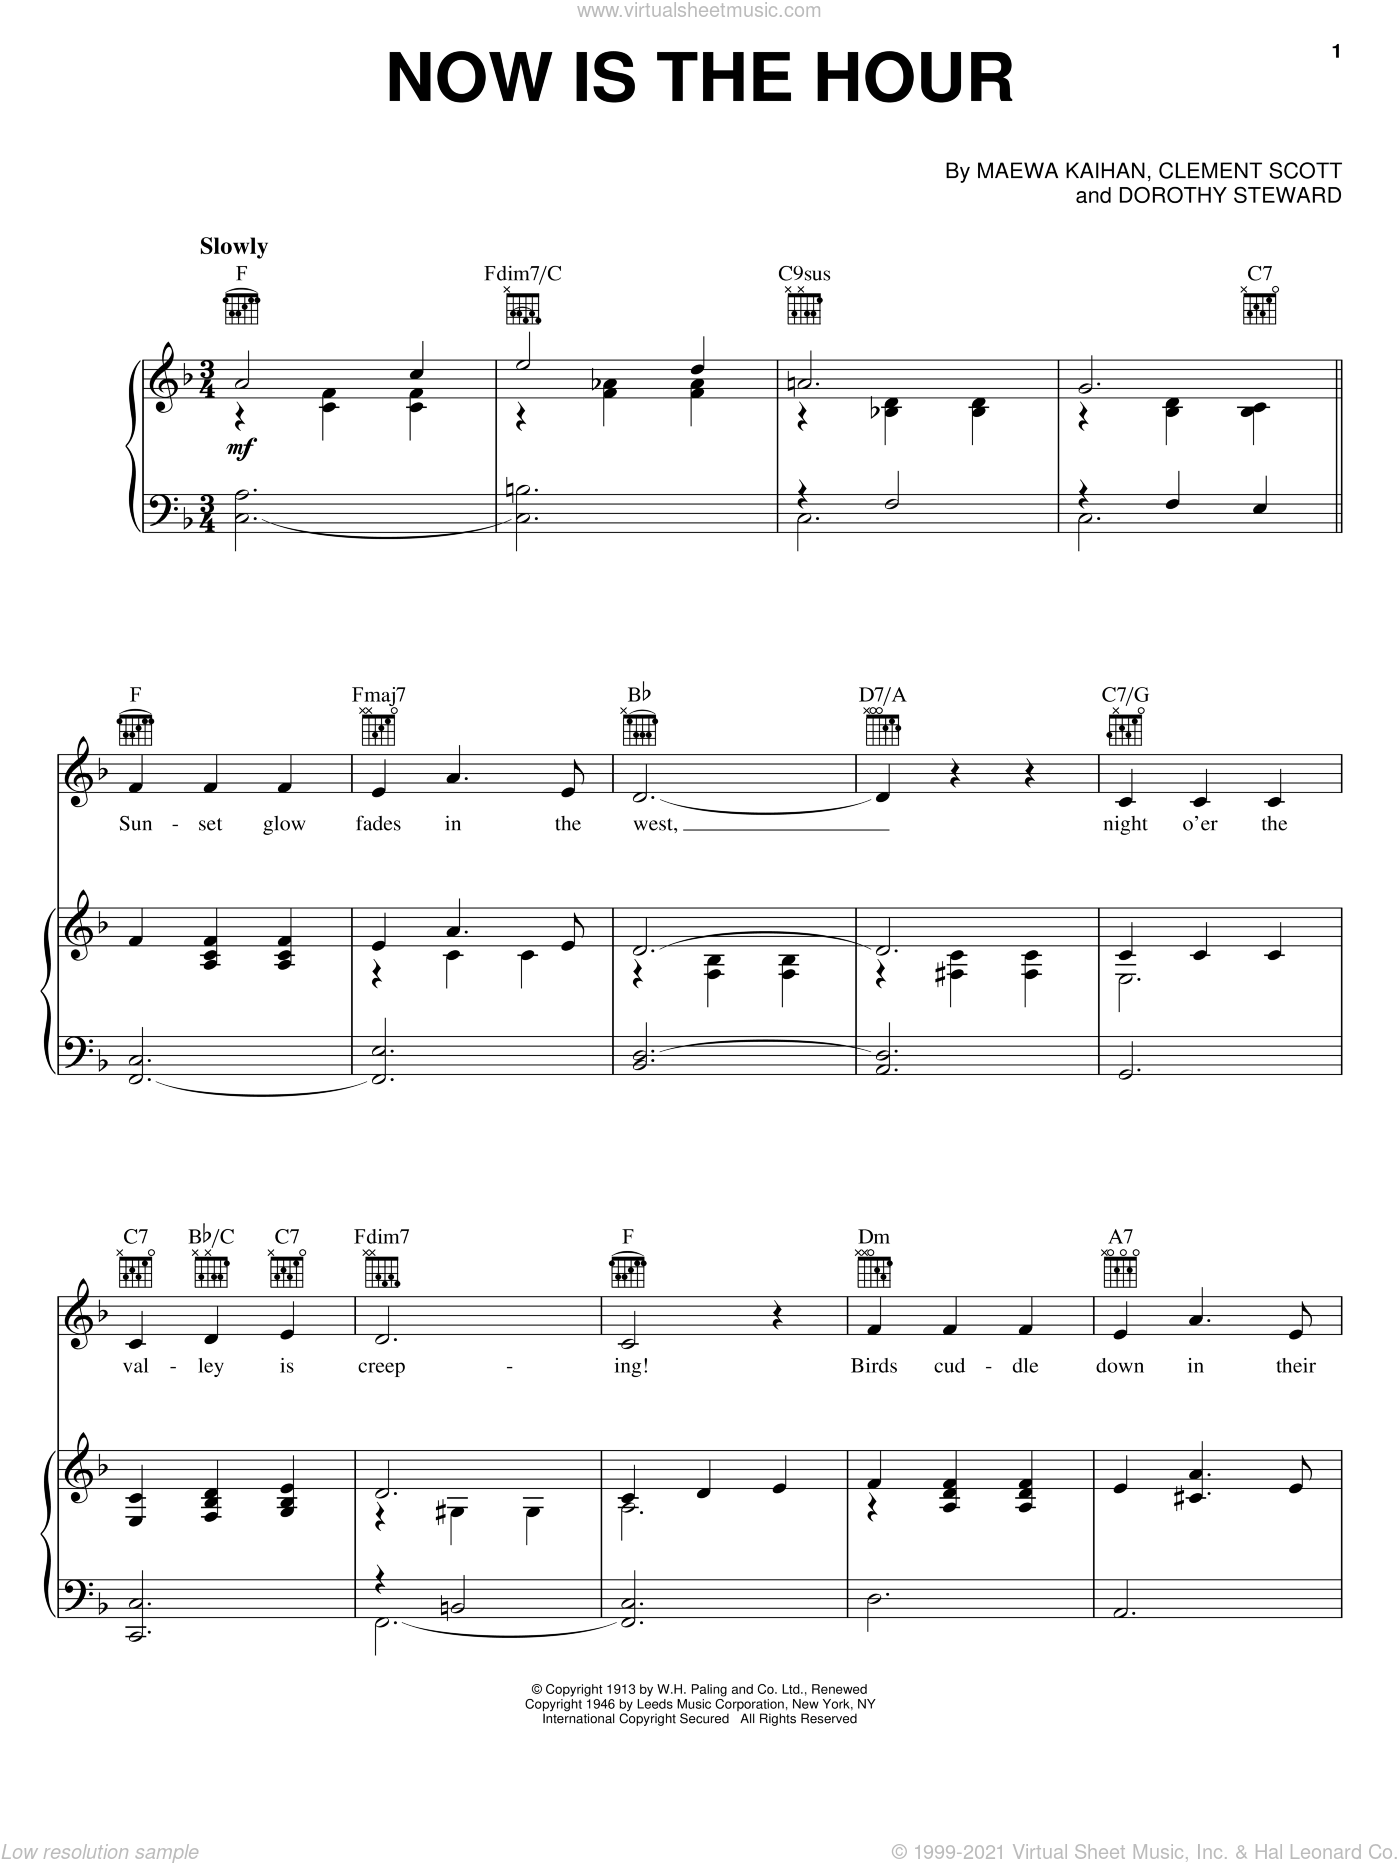 Now Is The Hour (Maori Farewell Song) sheet music for voice, piano or guitar by Bing Crosby, Clement Scott, Dorothy Stewart and Maewa Kaithau, intermediate skill level